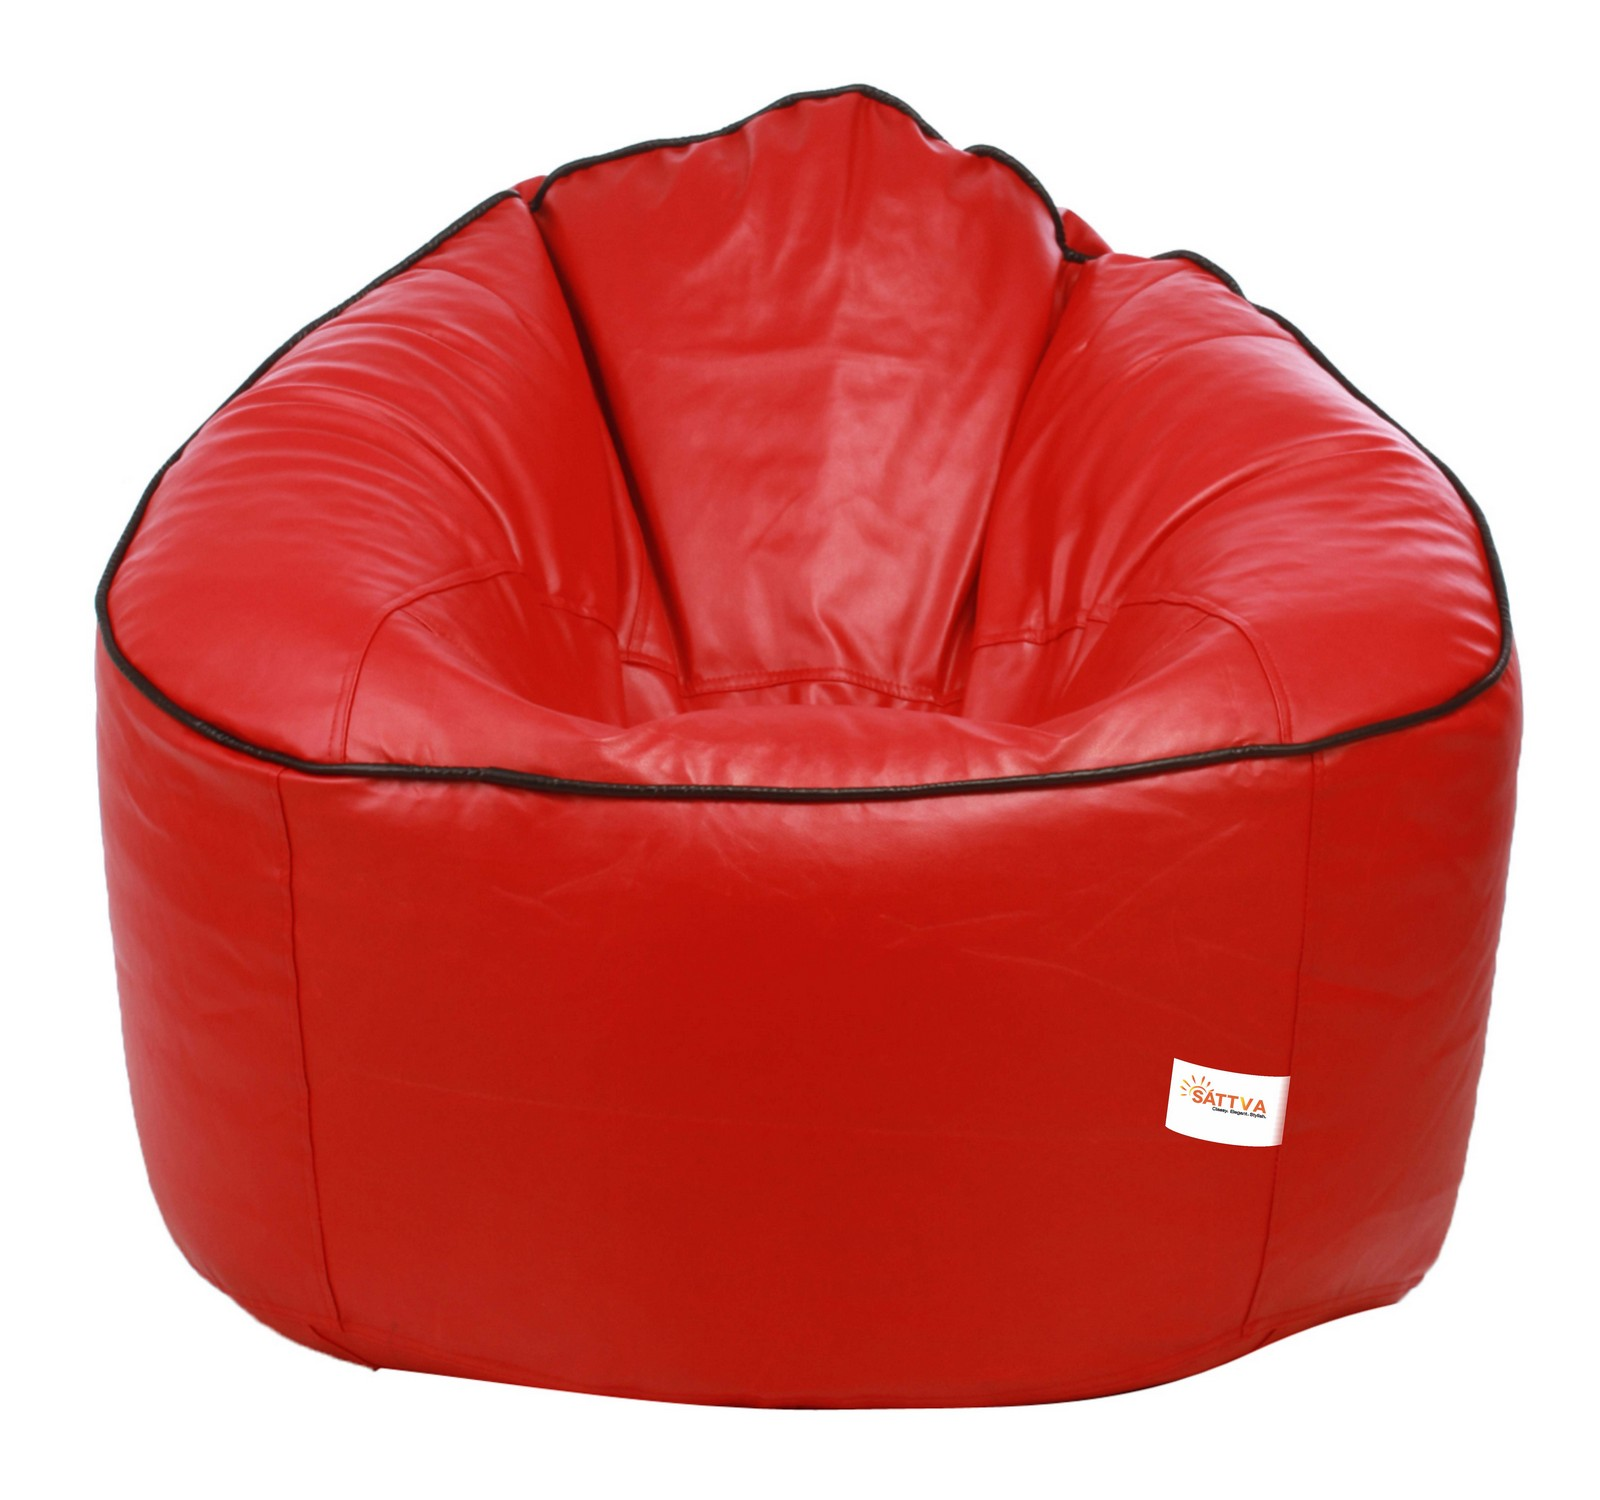 Sattva Muddha Sofa XXXL Bean Bag With Piping Design (with Beans) XXXL - Dark Green With Yellow Piping (XXXL, Red With Black Piping)